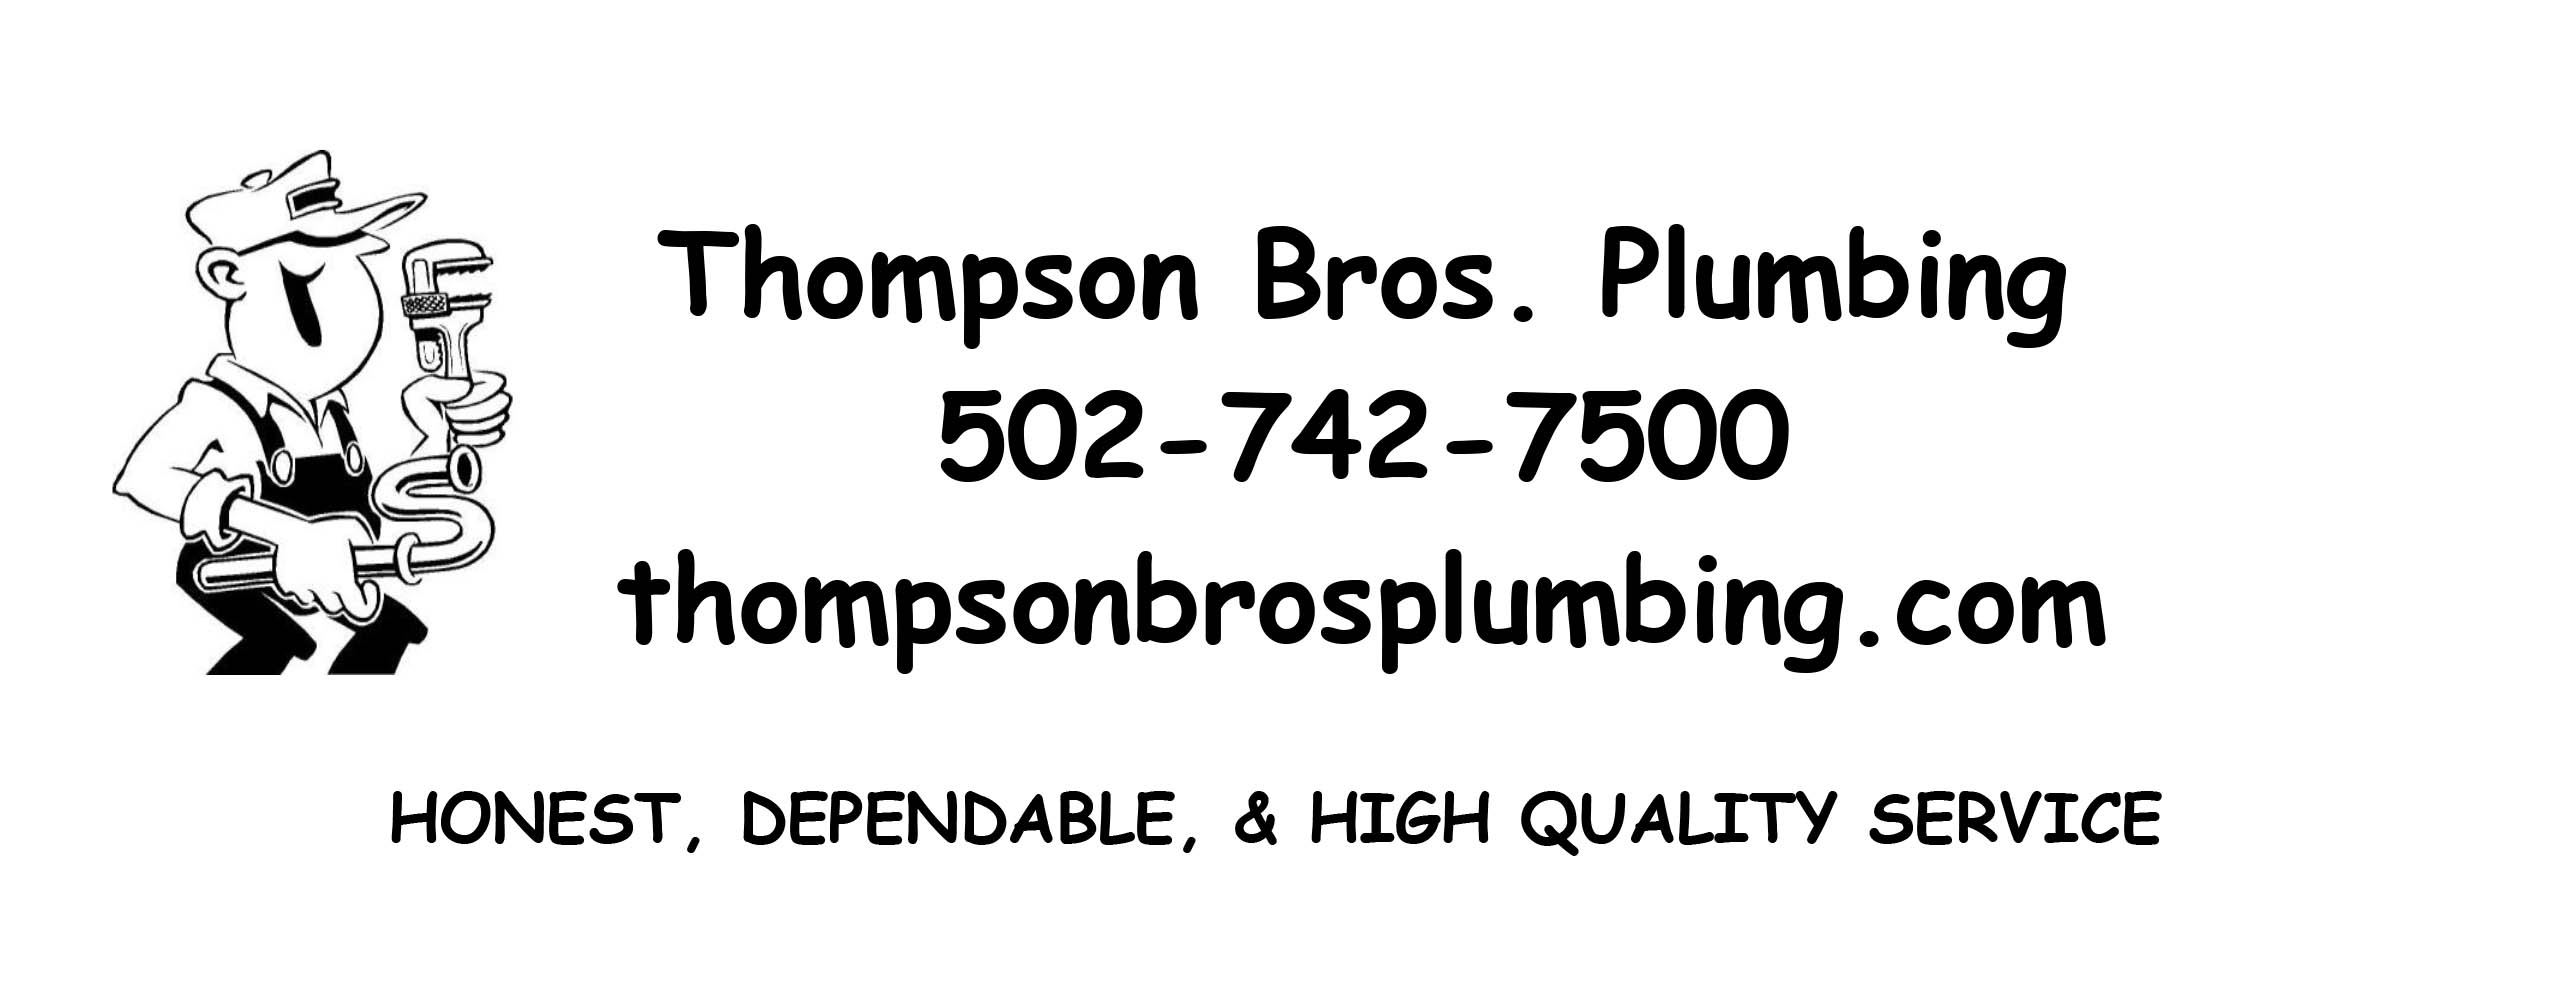 Thompson Bros. Plumbing